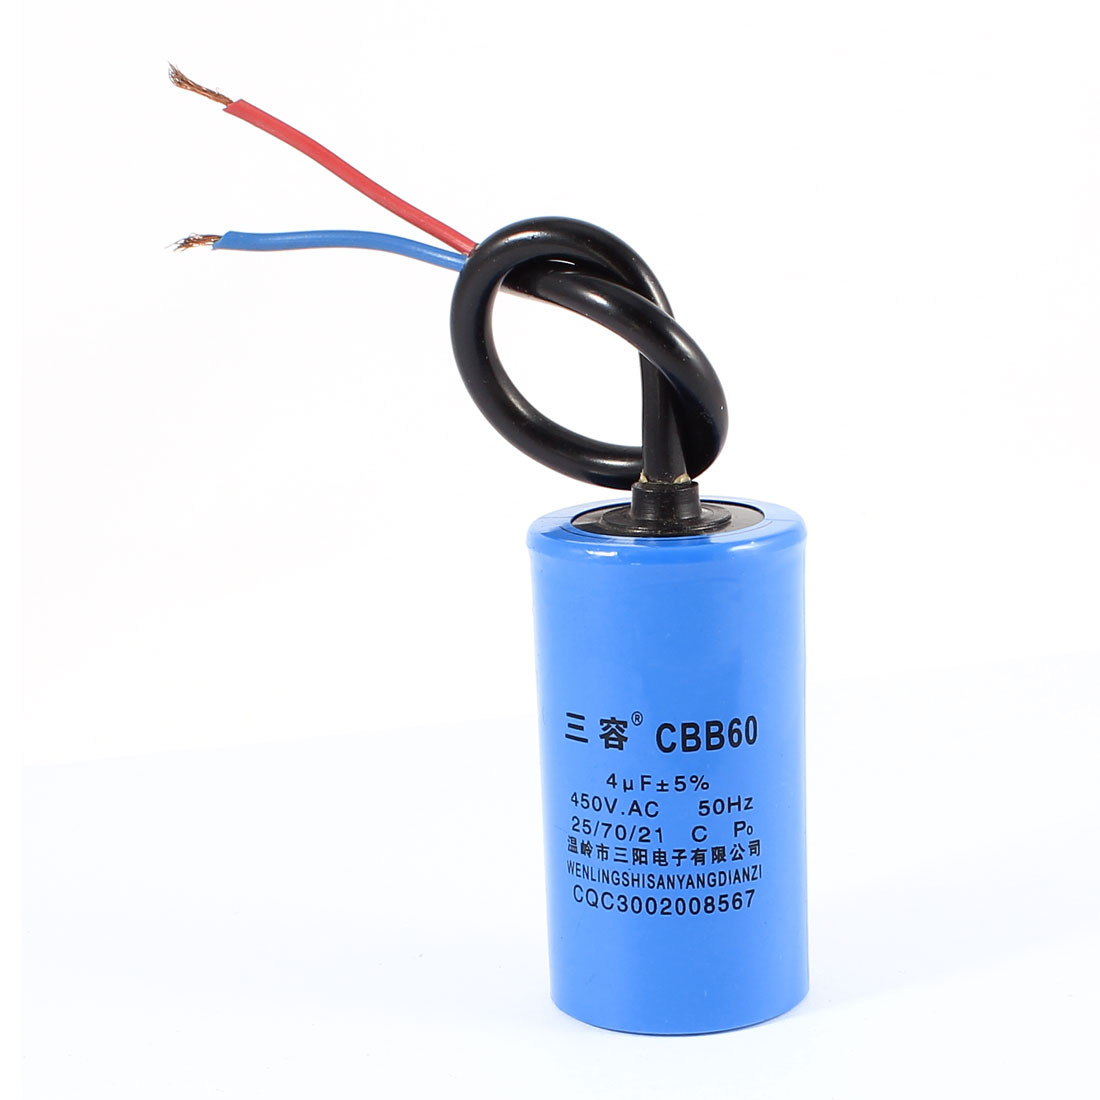 CBB60 AC 450V 4uF Double Wire Leads Cylindrical Polypropylene Film Motor Start Run Capacitor Blue for Washing Machine